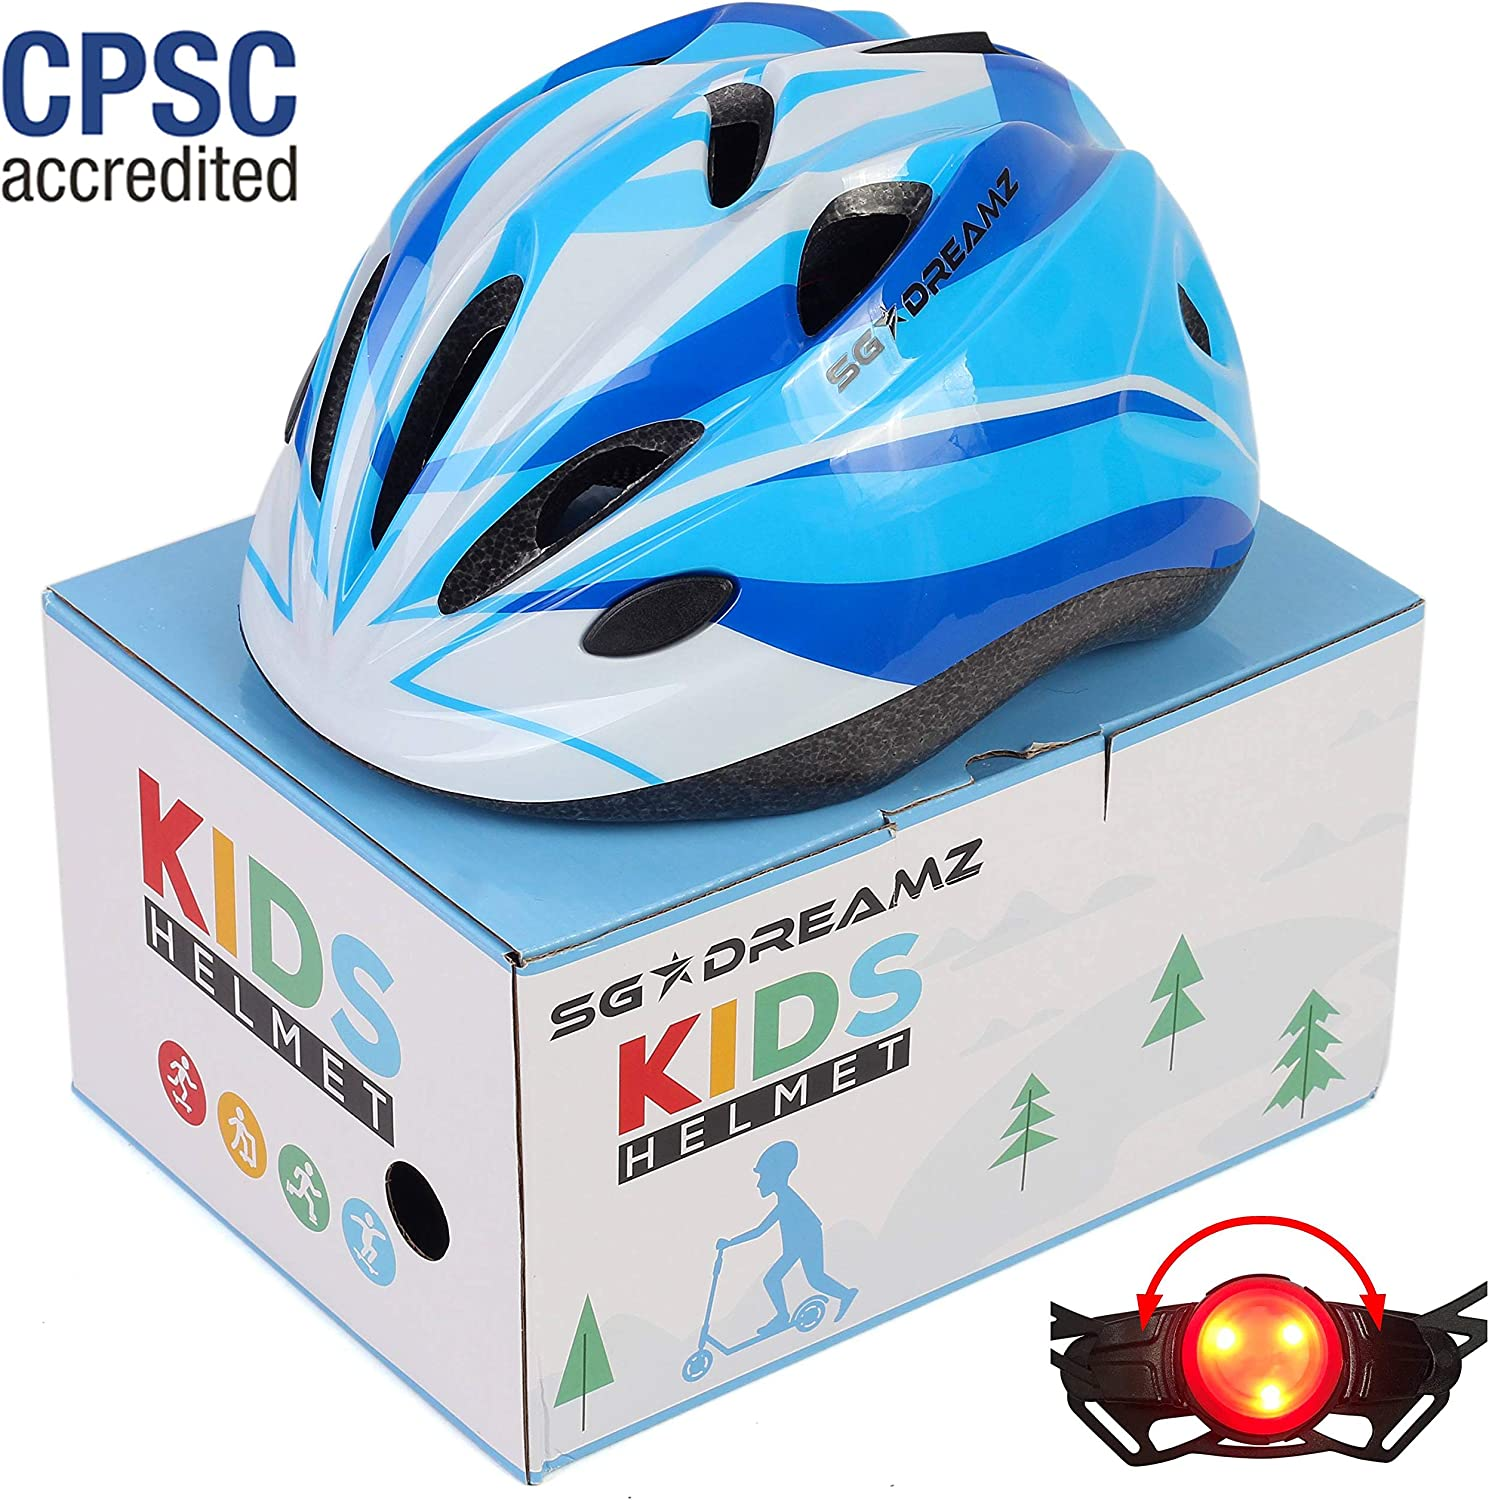 Ages 3 to 7 Multi-Sports with LED Safety Light Comes in Great Looking Package Perfect for Gift Kids Helmet CSPC Certified for Safety Adjustable from Toddler to Youth Size